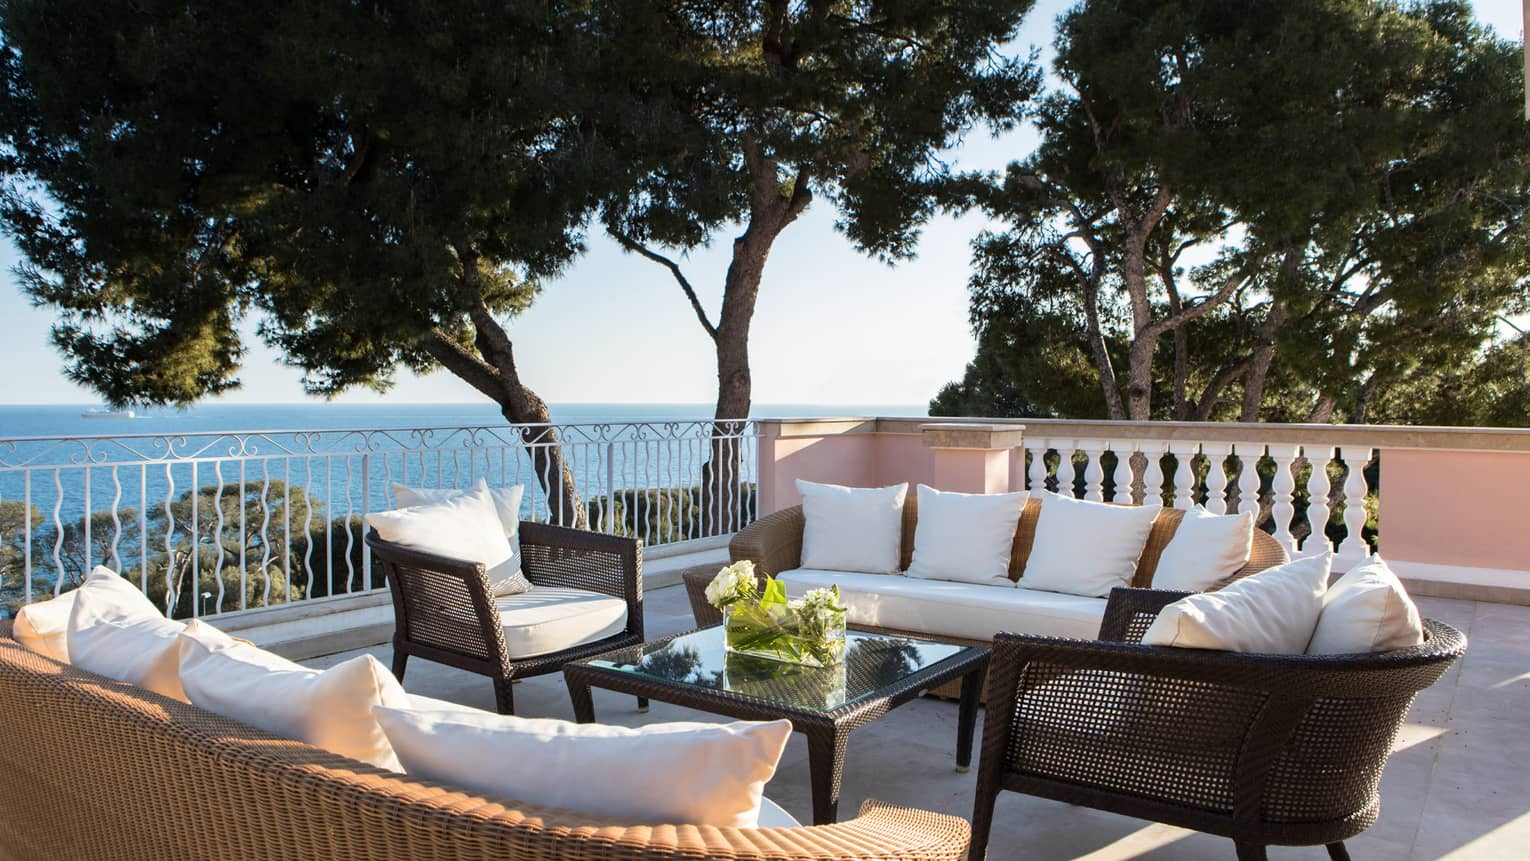 Plush patio sofas, chairs on veranda by trees, Mediterranean Sea views